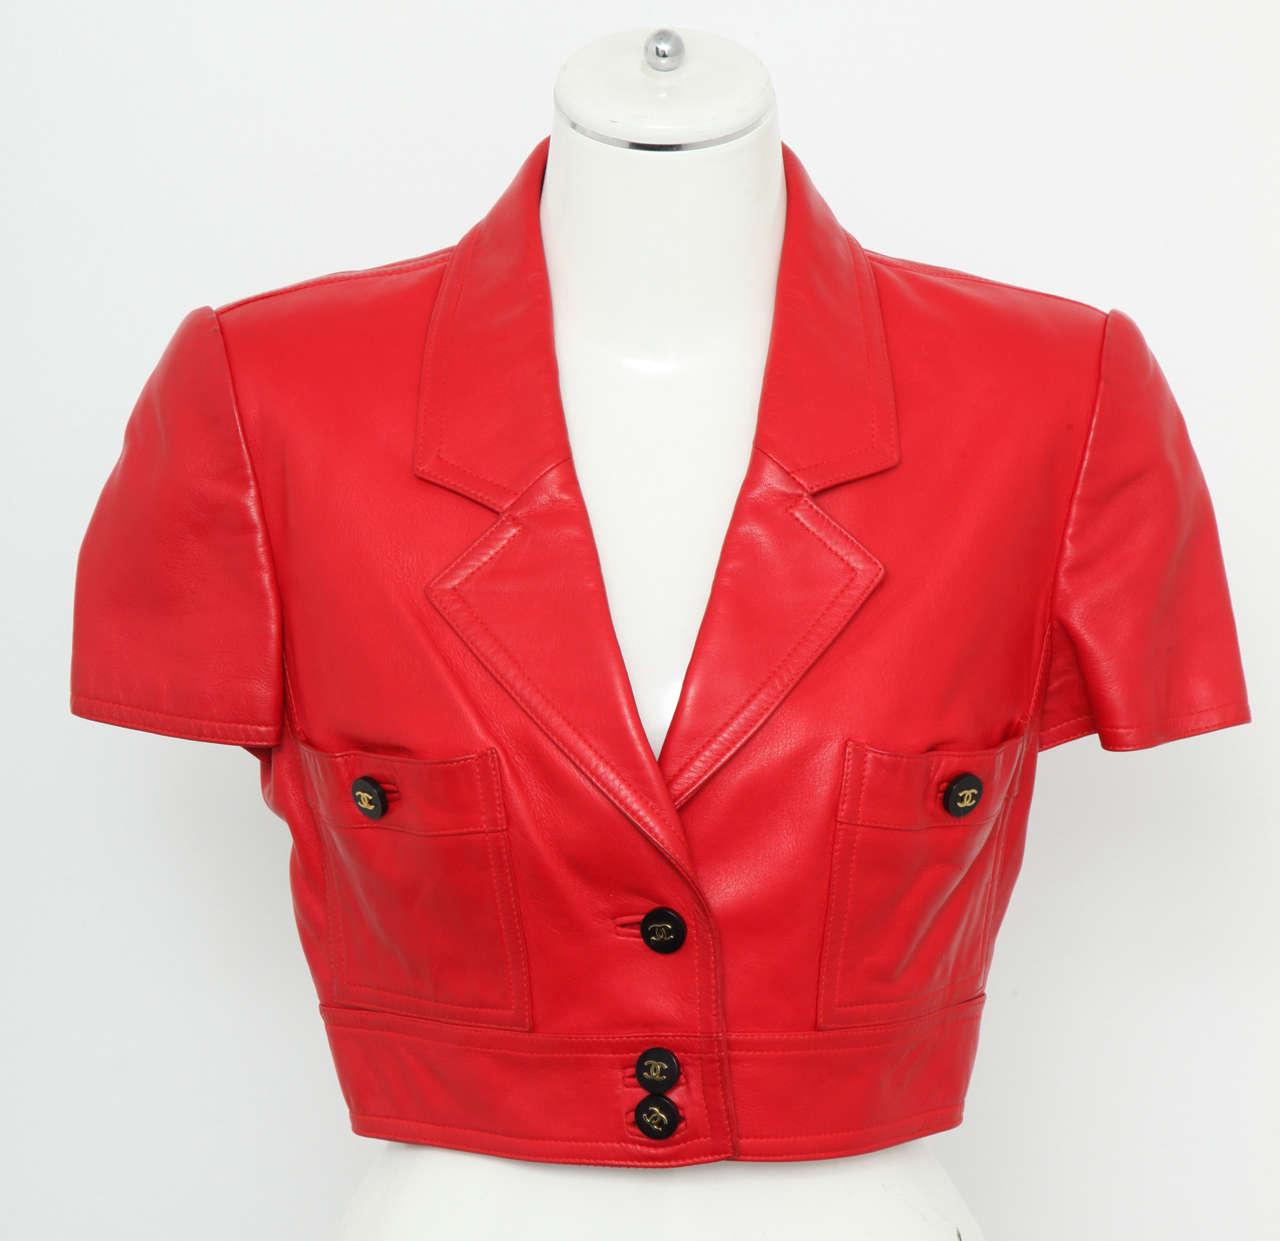 Chanel Rare Red Cropped Leather Jacket 2